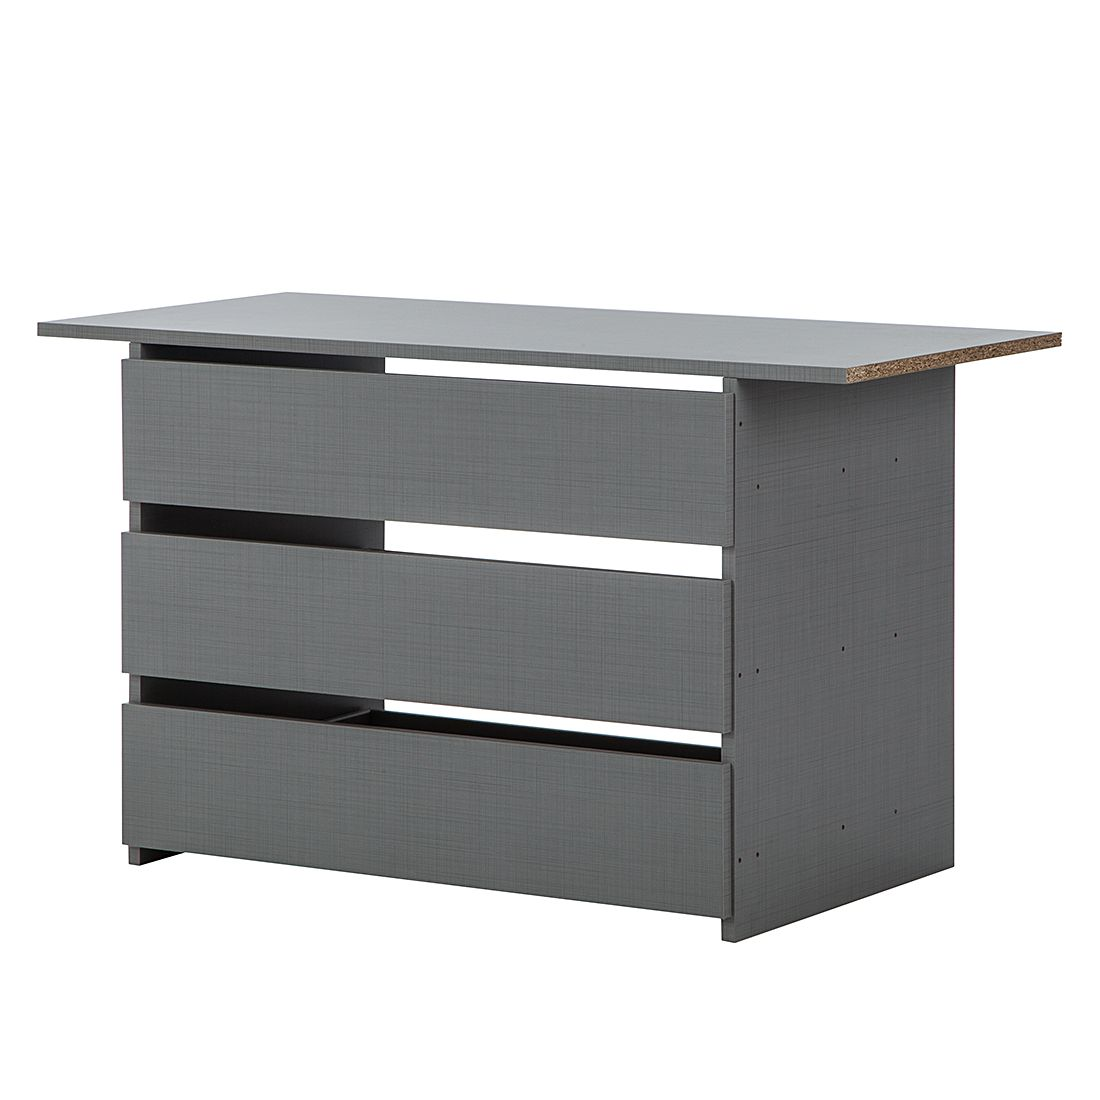 scrapeo support chaussures pour armoire pax ikea. Black Bedroom Furniture Sets. Home Design Ideas